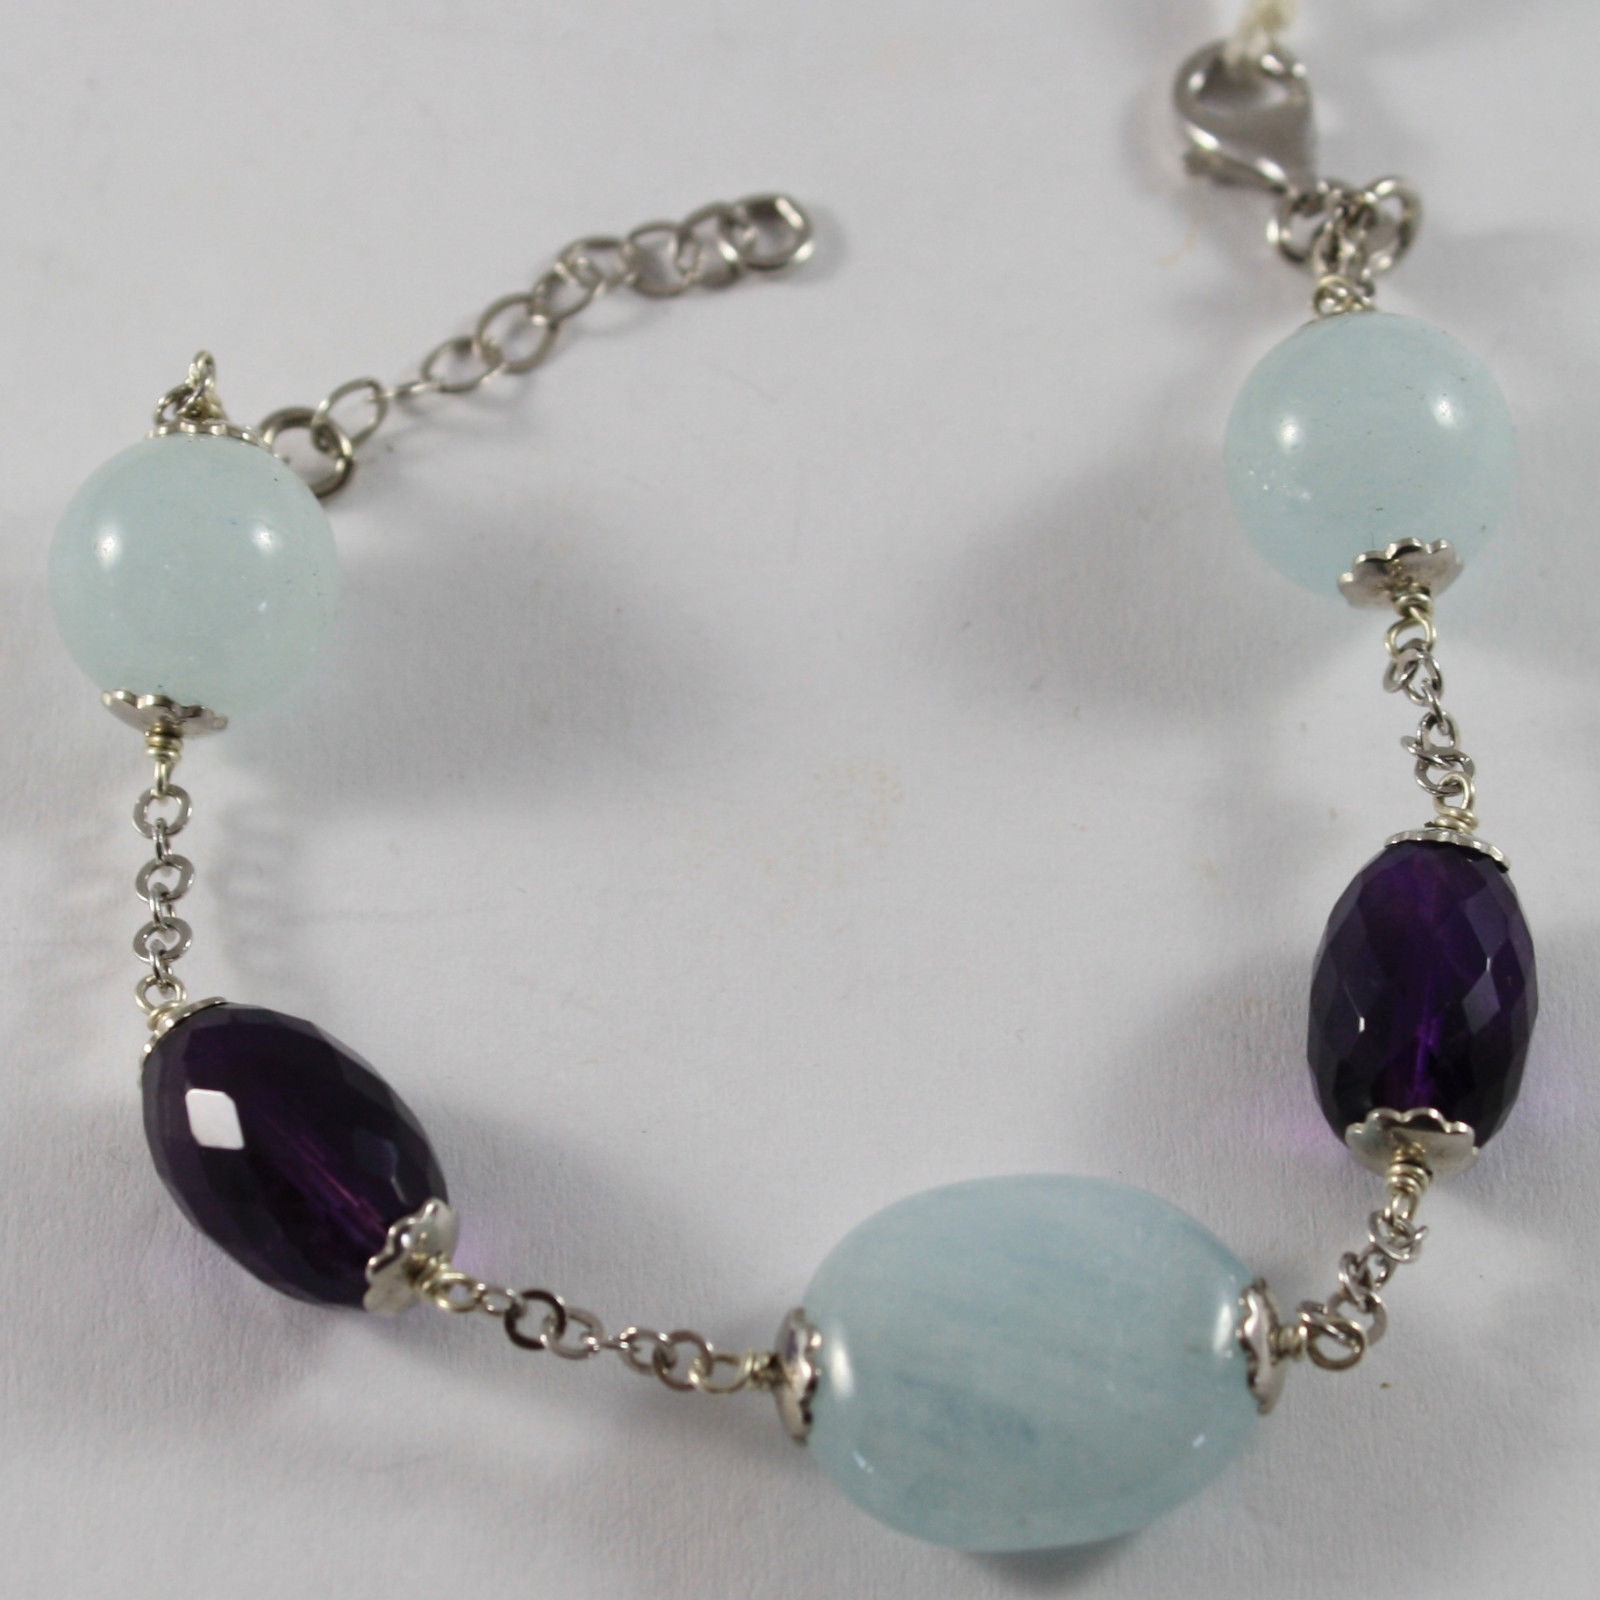 .925 RHODIUM SILVER BRACELET WITH AMETHYST AND AQUAMARINE